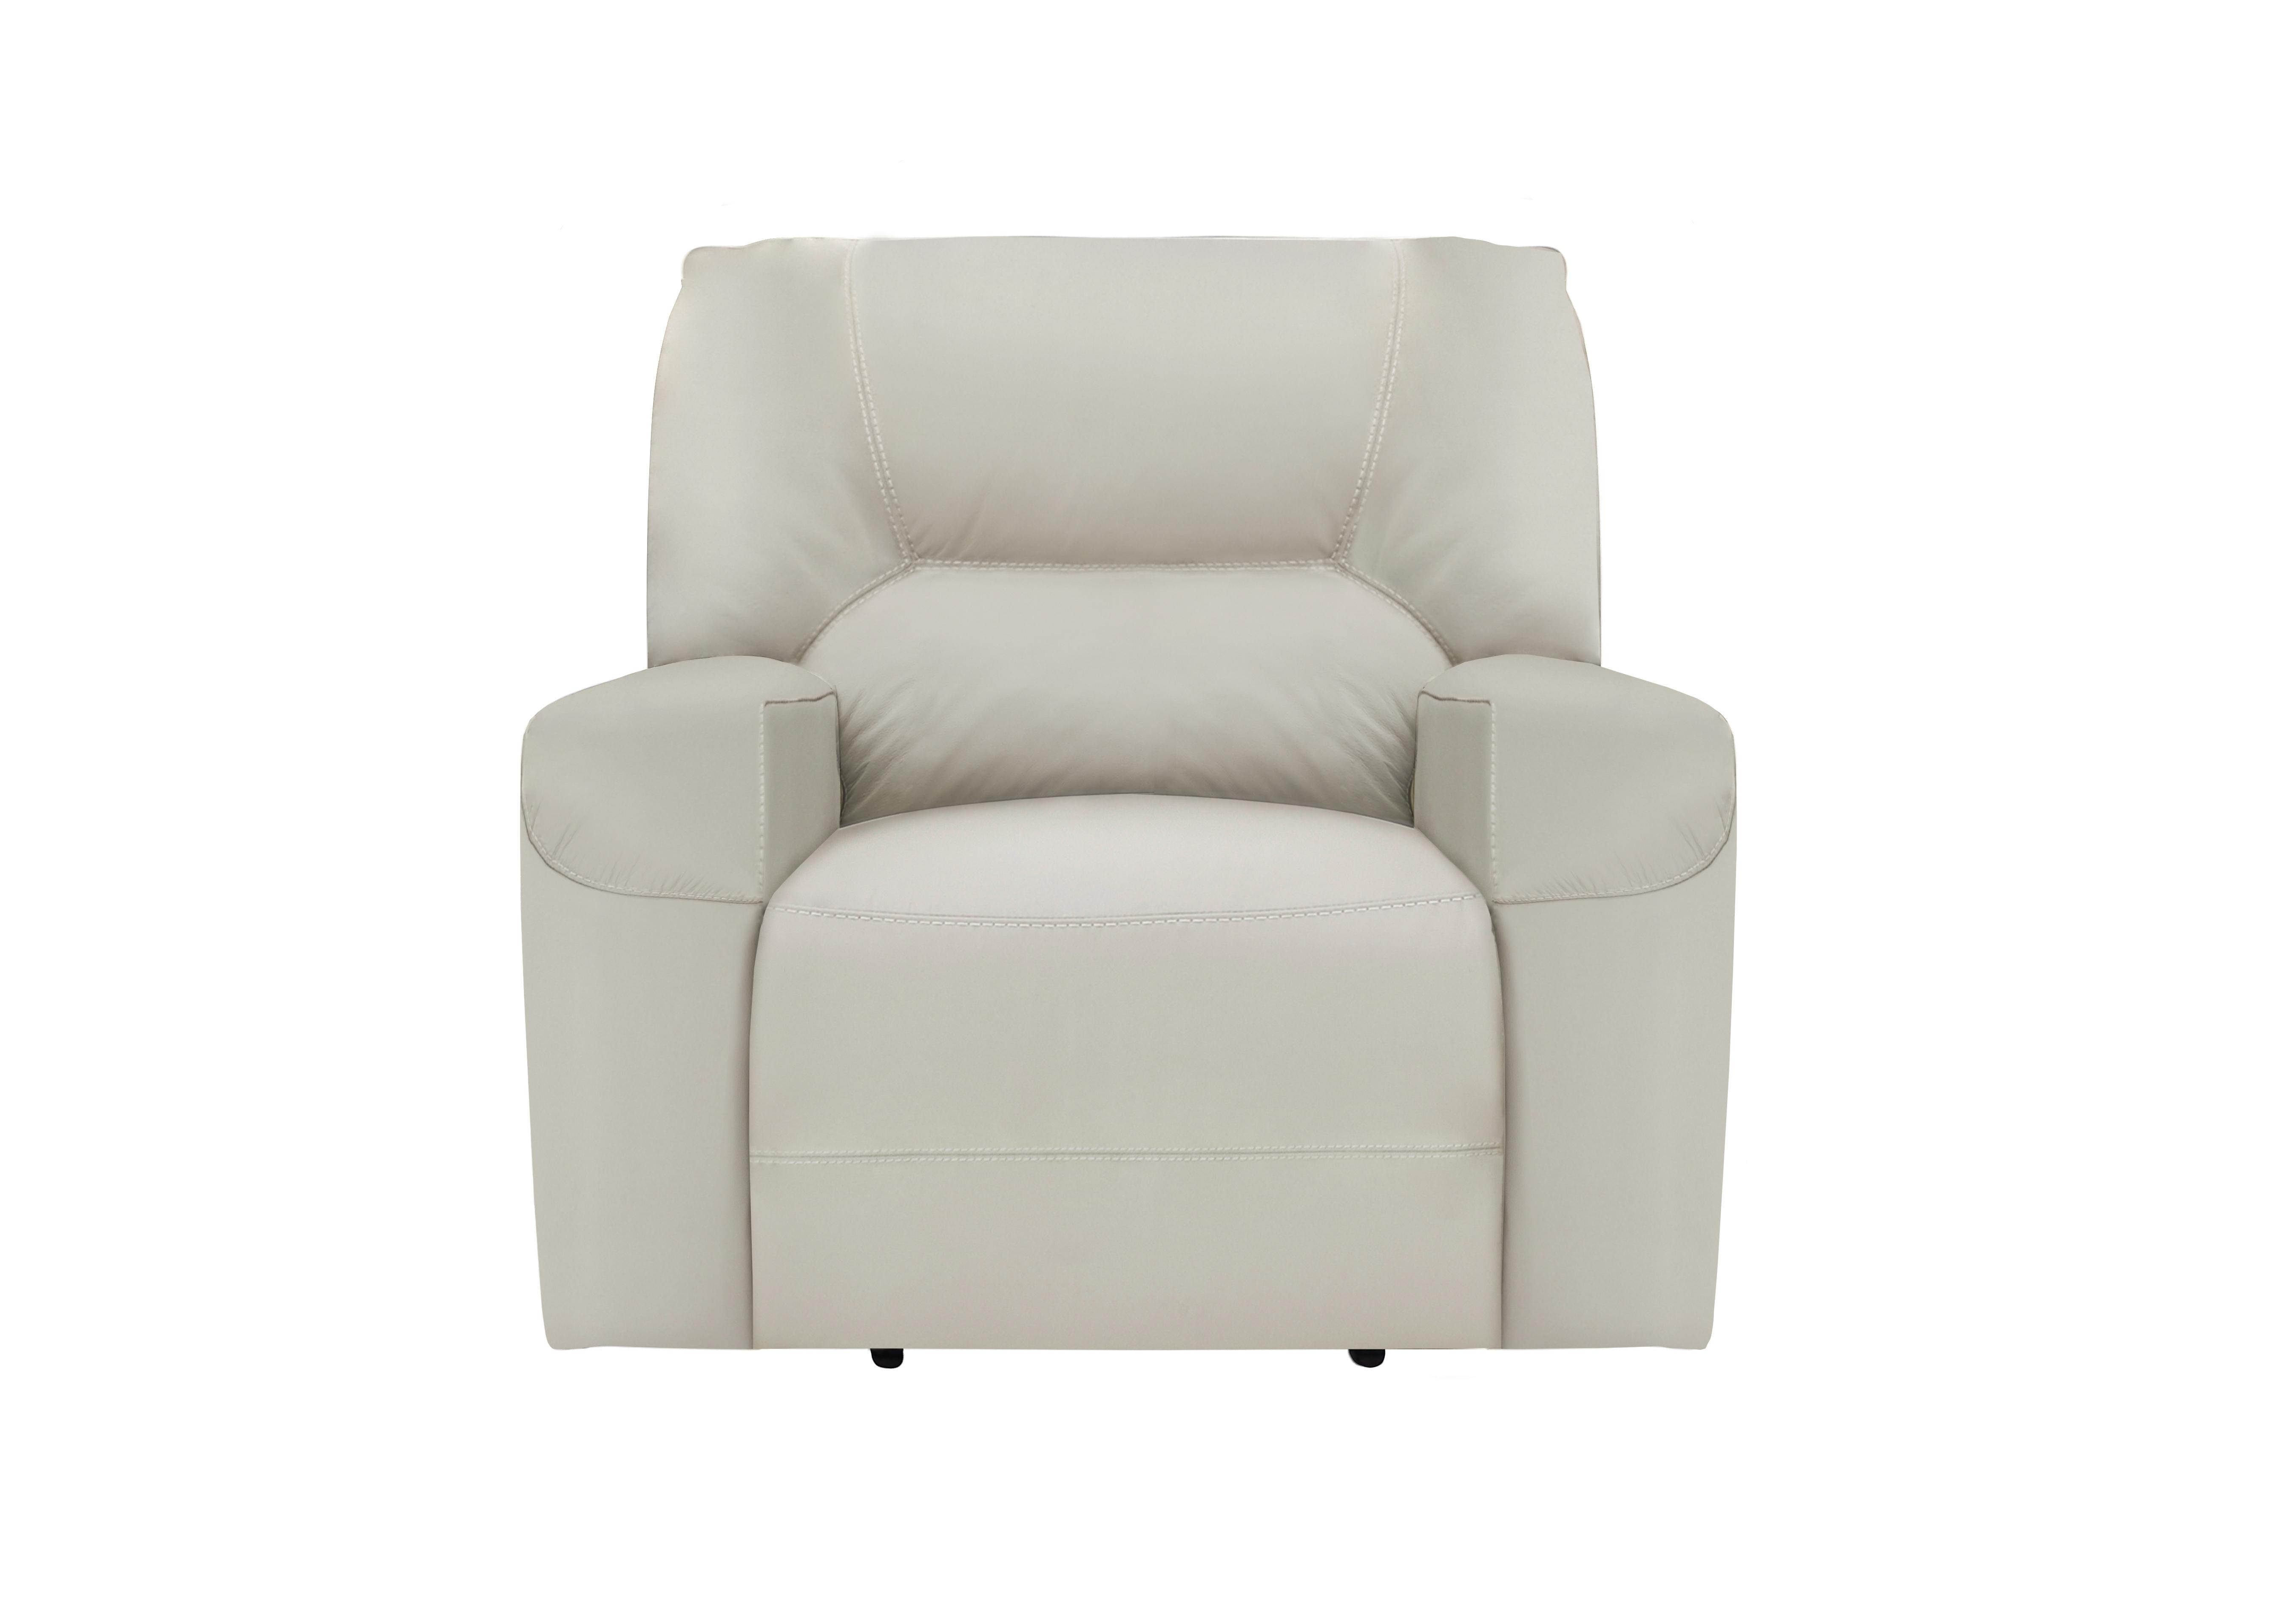 Bon World Of Leather Eden Leather Recliner Armchair